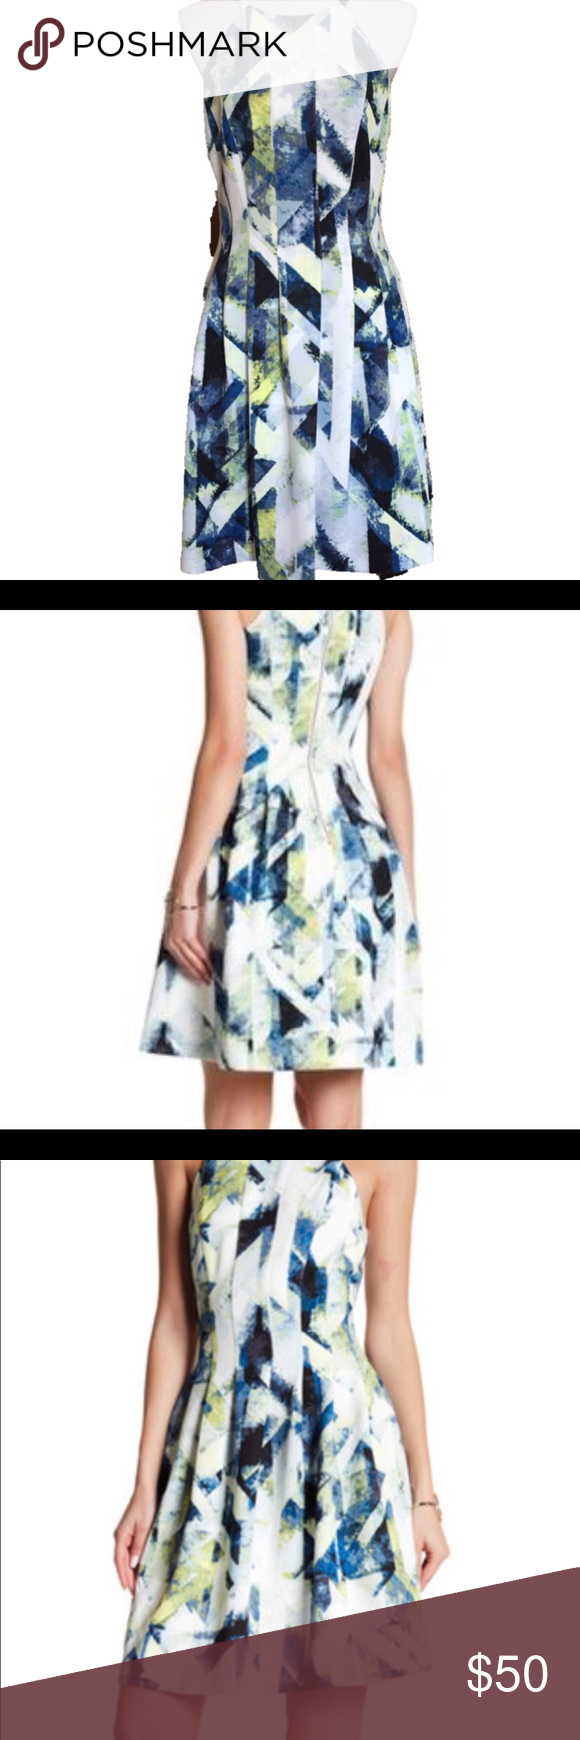 Vince Camuto Blue And Yellow Fit And Flare Dress Fit And Flare Dress Fit And Flare Clothes Design [ 1740 x 580 Pixel ]